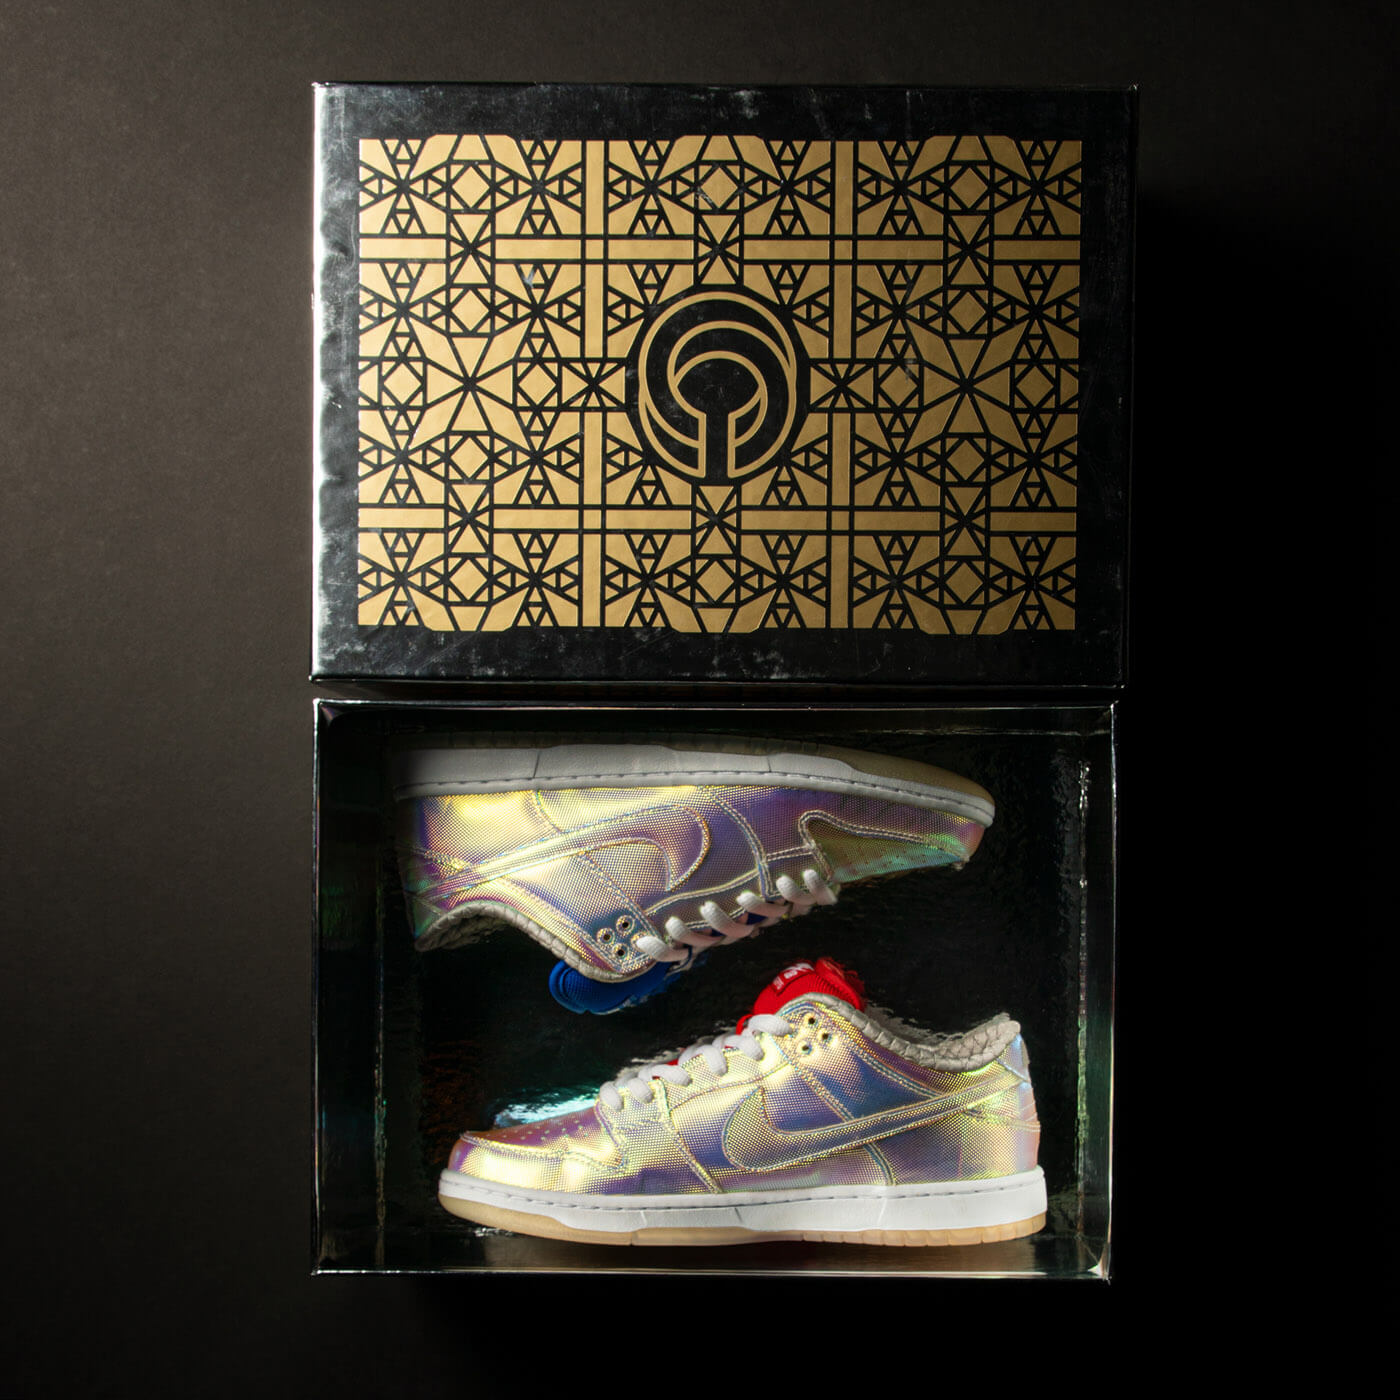 Concepts x Nike SB Dunk Grail Pack